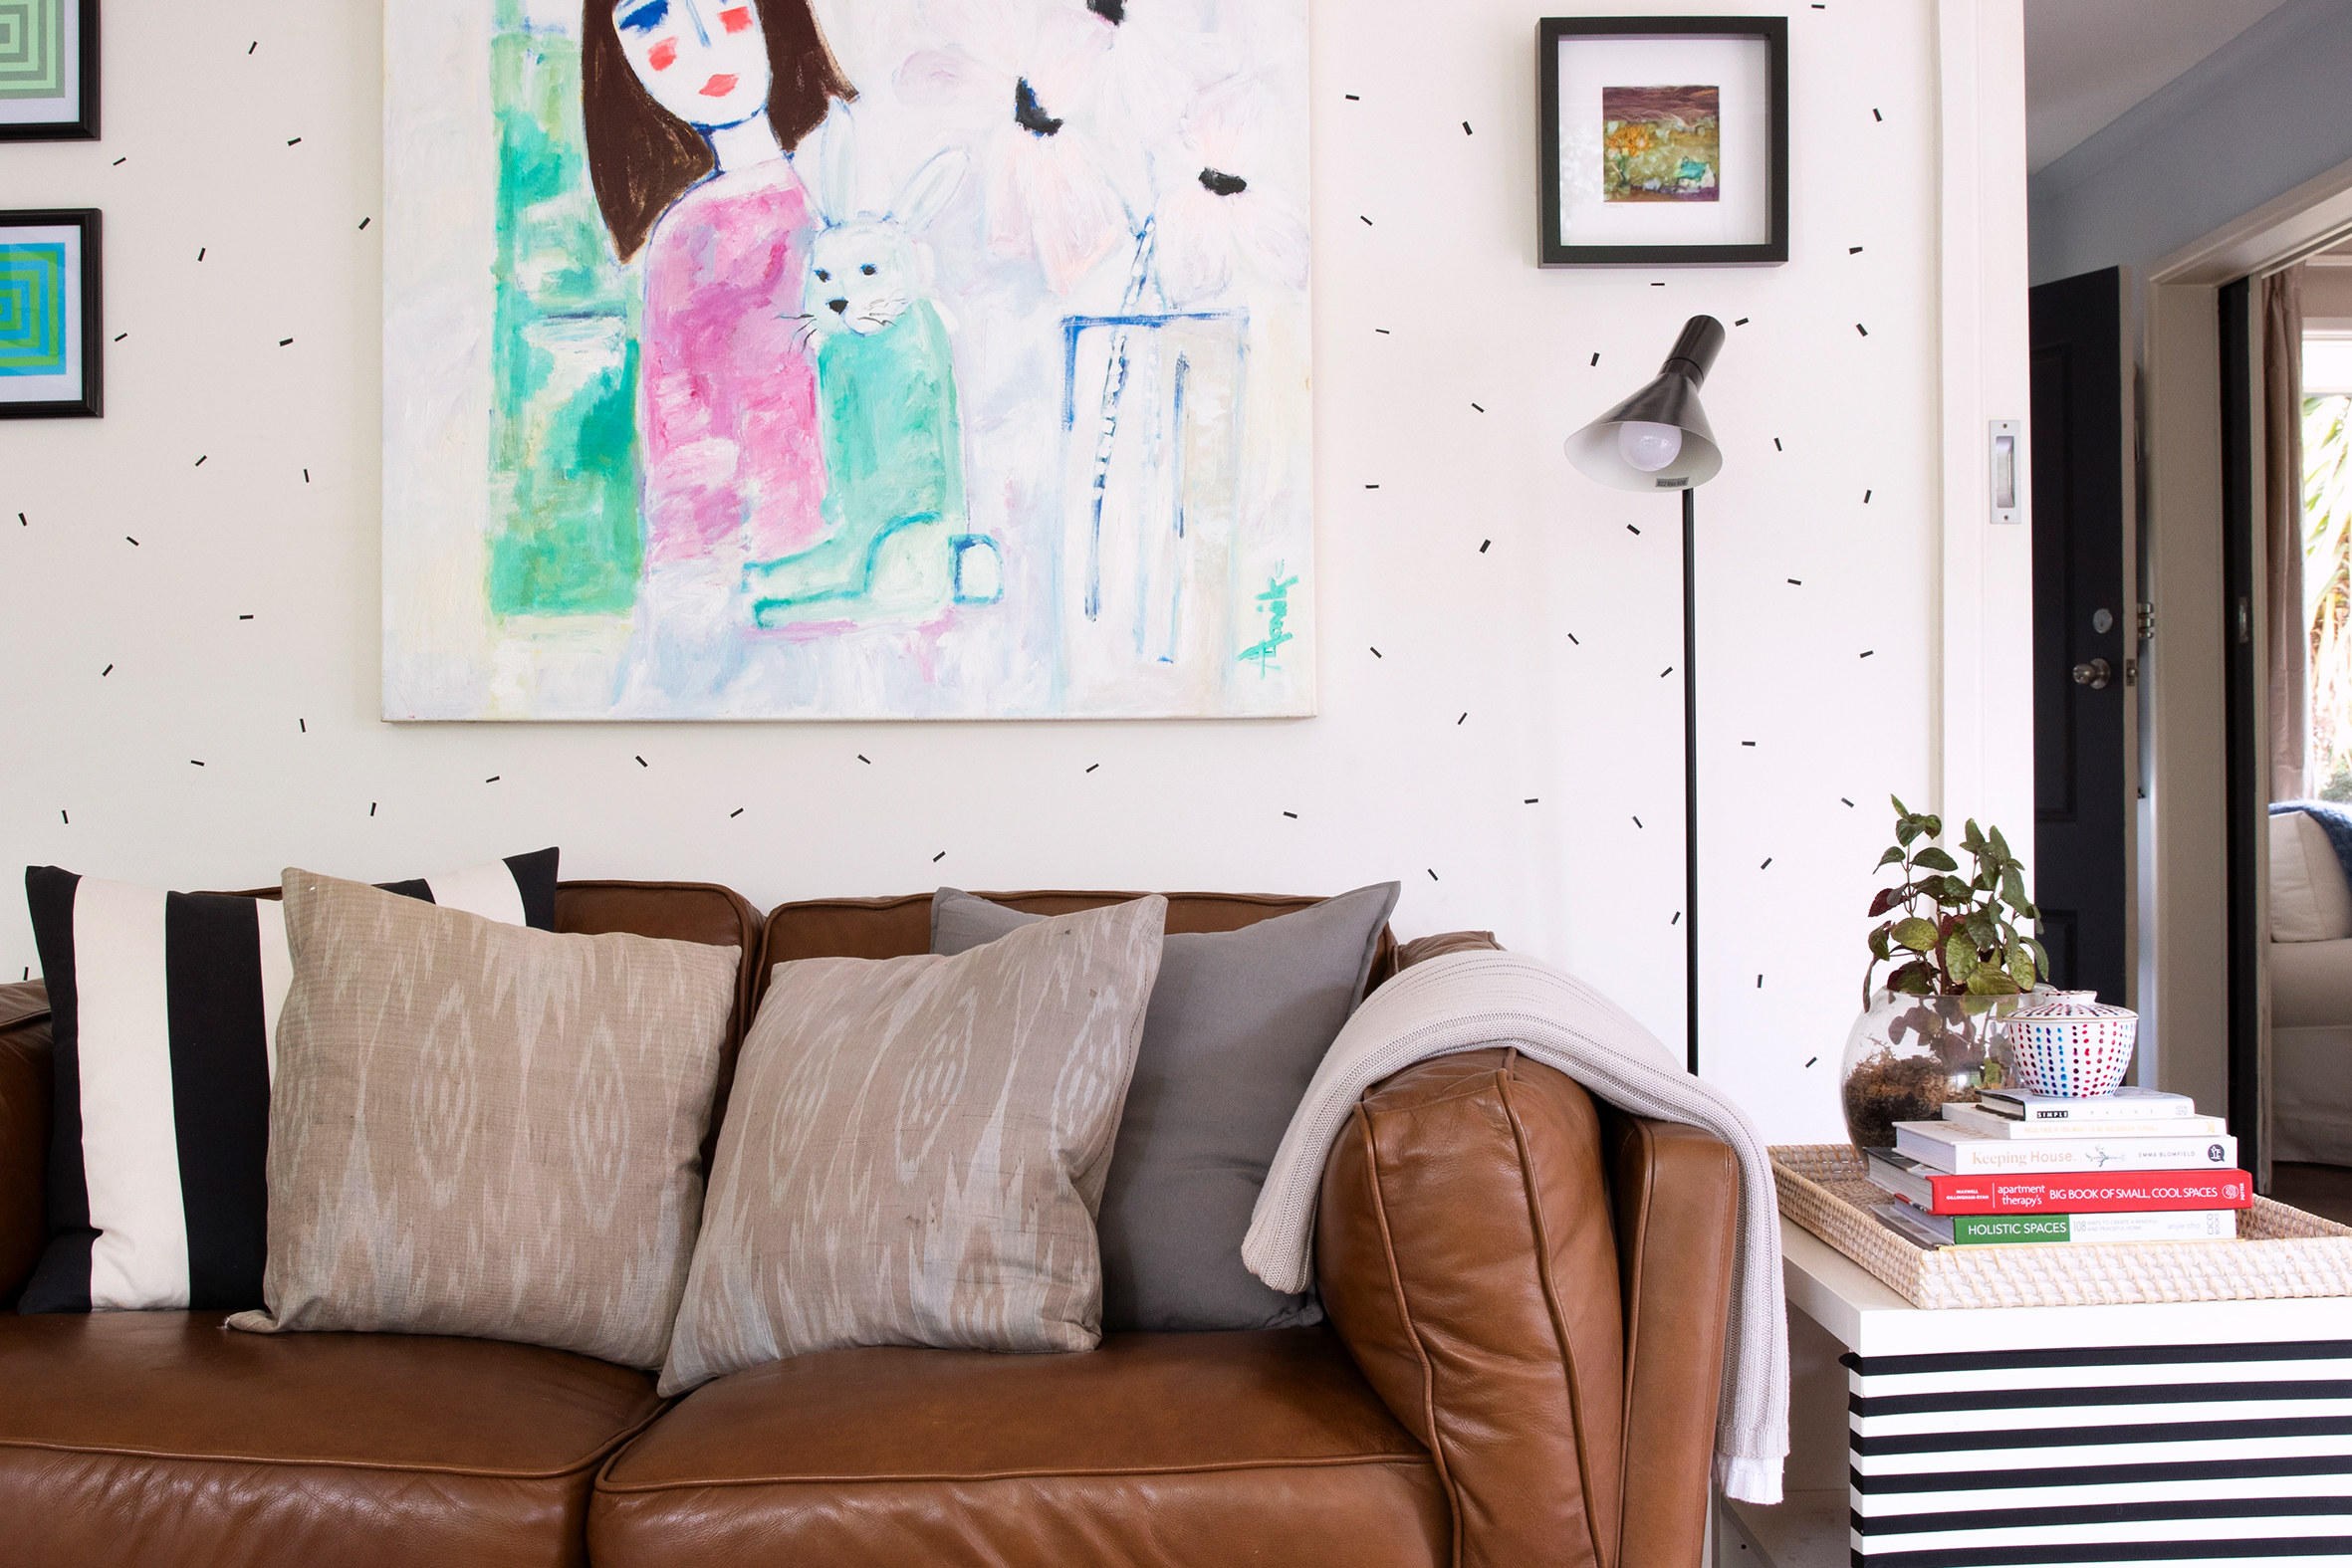 This Australia Home Features Washi Tape Used in Two Simple But Striking Ways